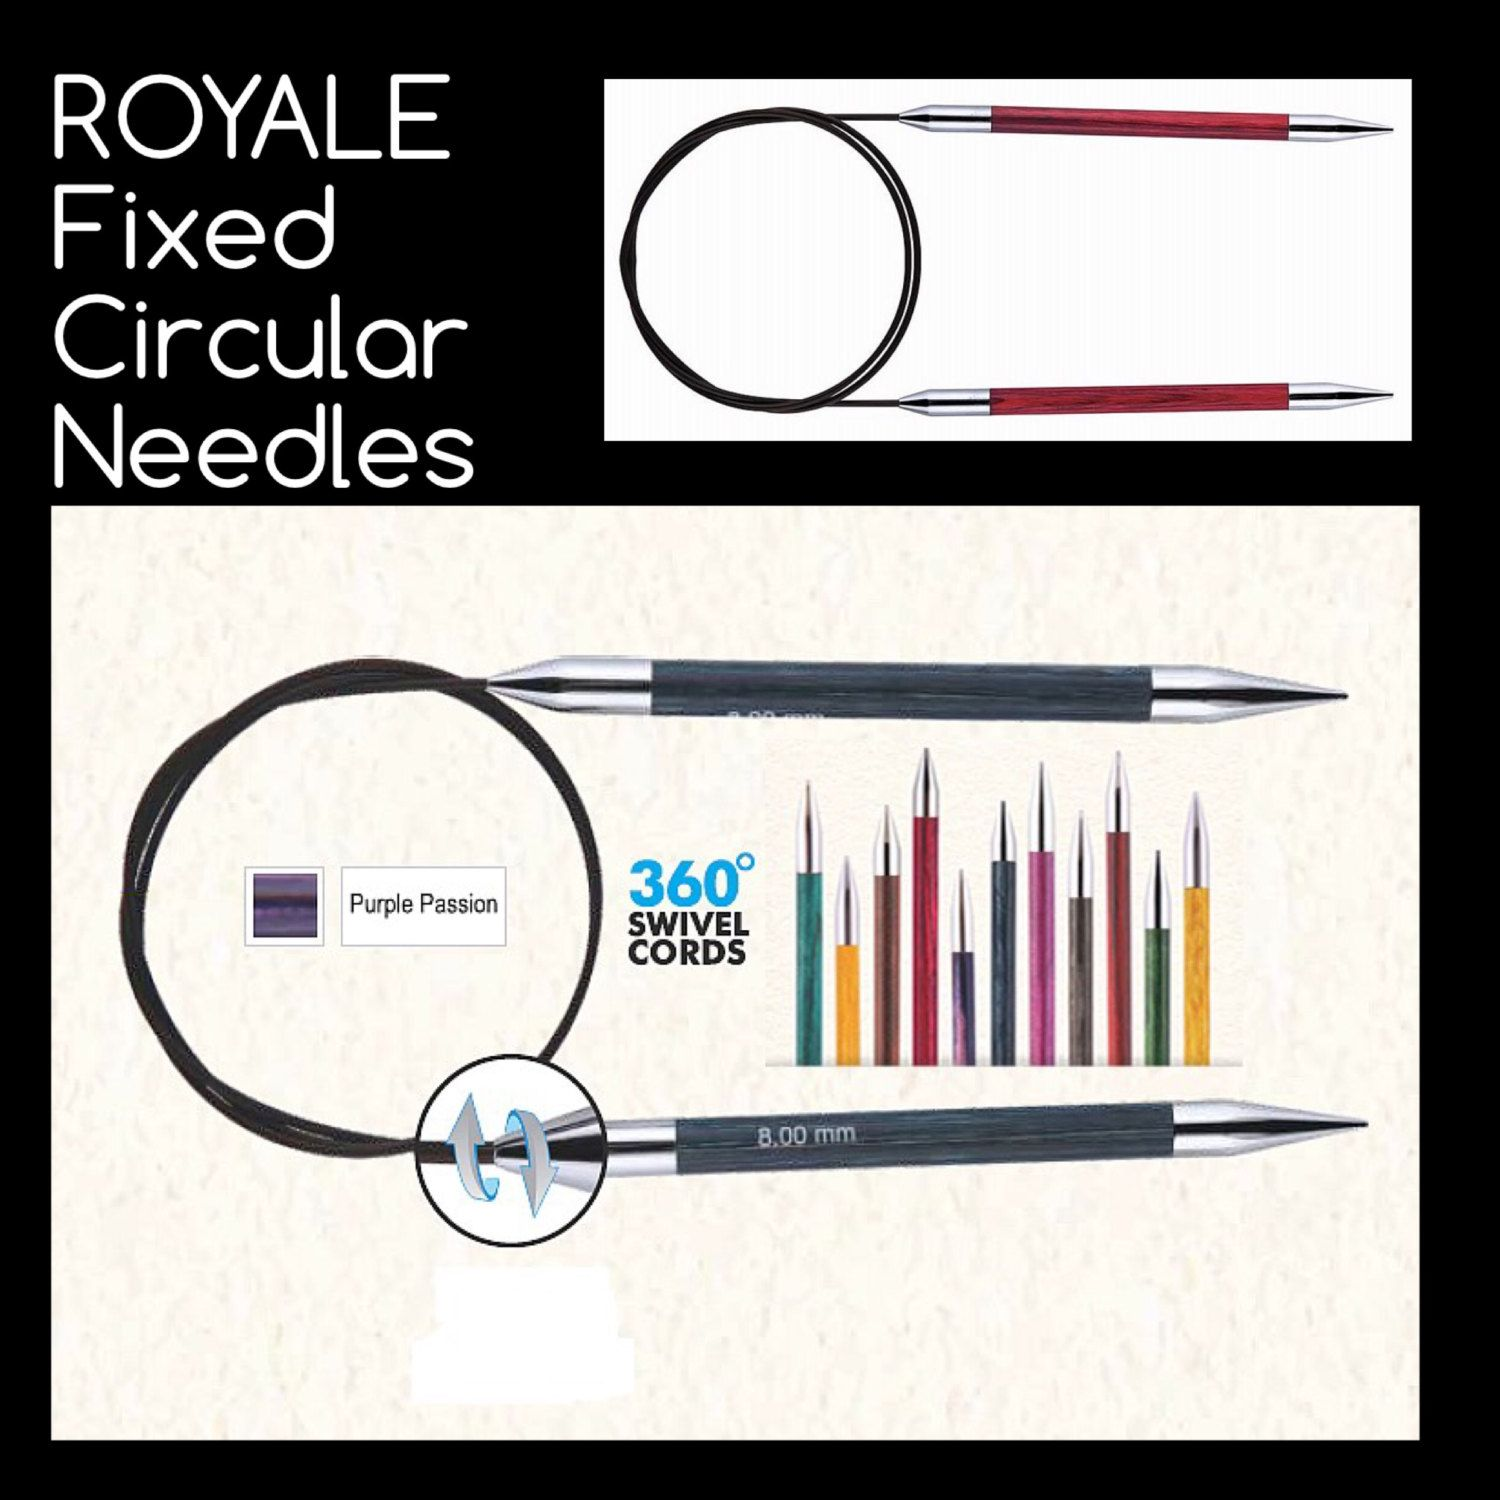 New Royale Fixed Circular Needles With 360 Deg Swivel Cables